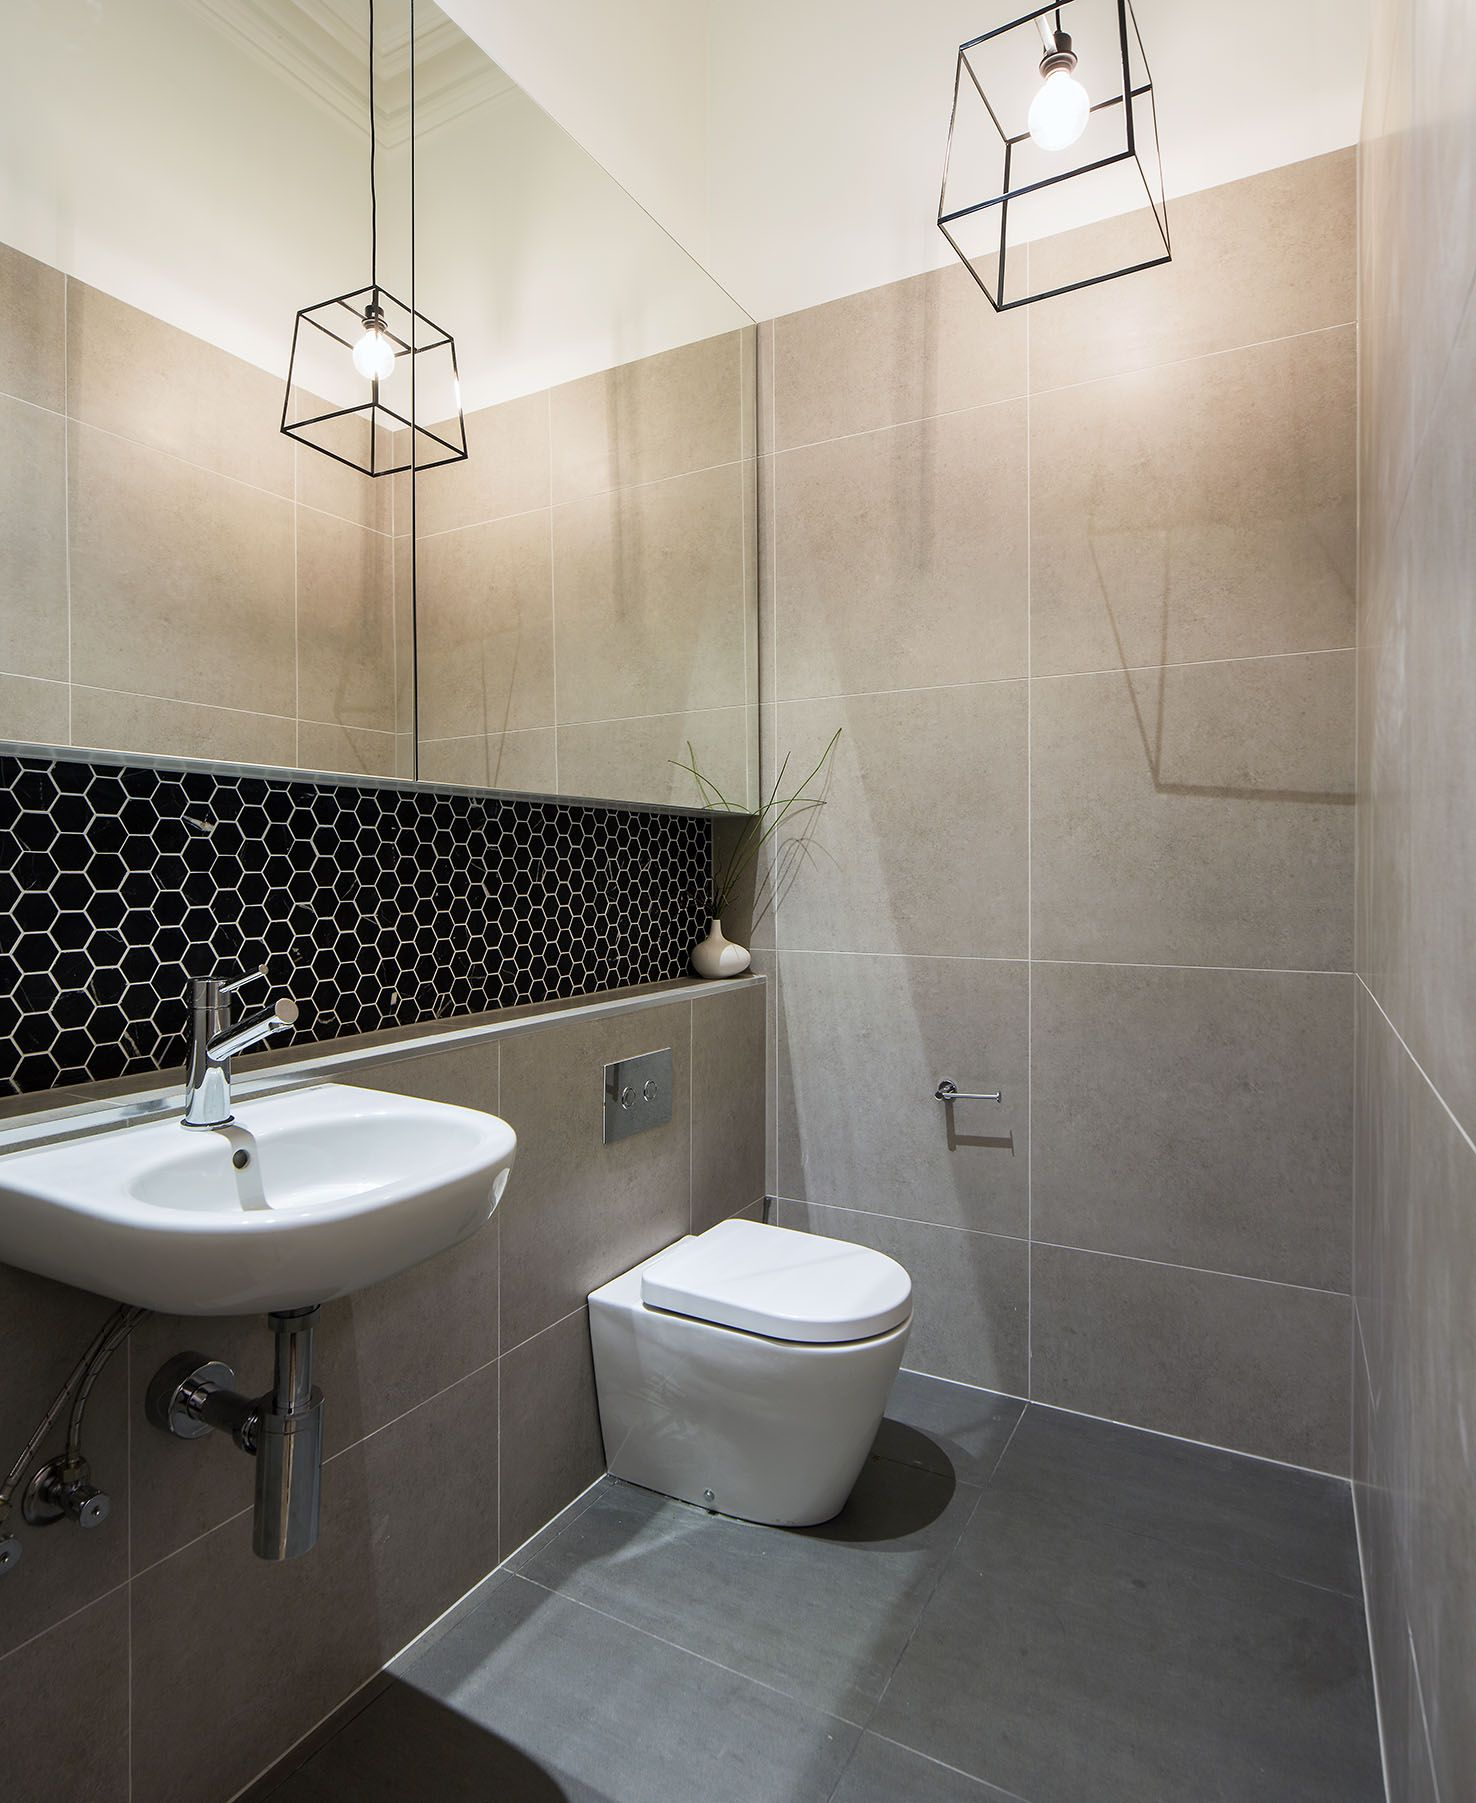 kitchen bathroom construction project melbourne on bathroom renovation ideas melbourne id=15790